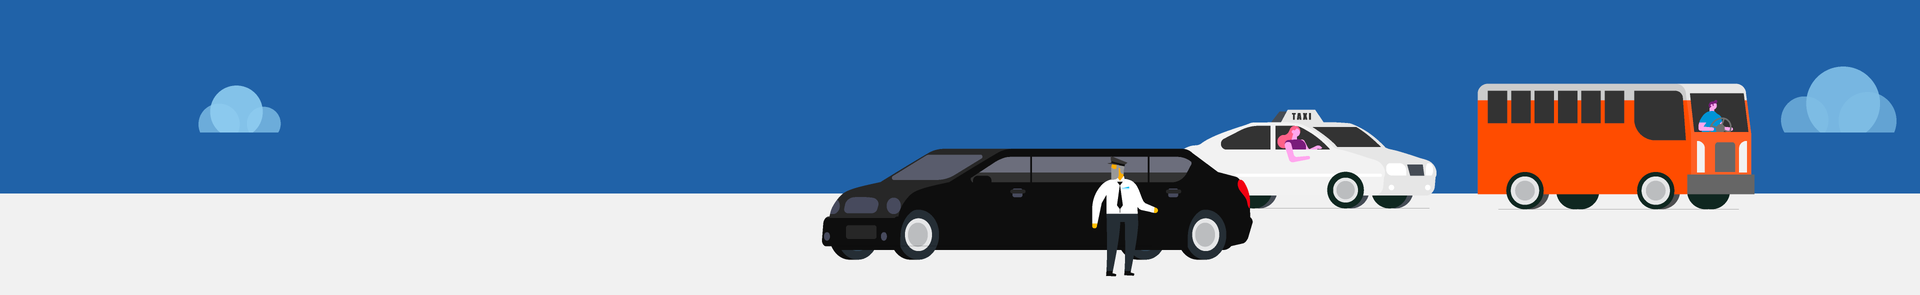 Graphic of school bus driver, limo driver and taxi driver.